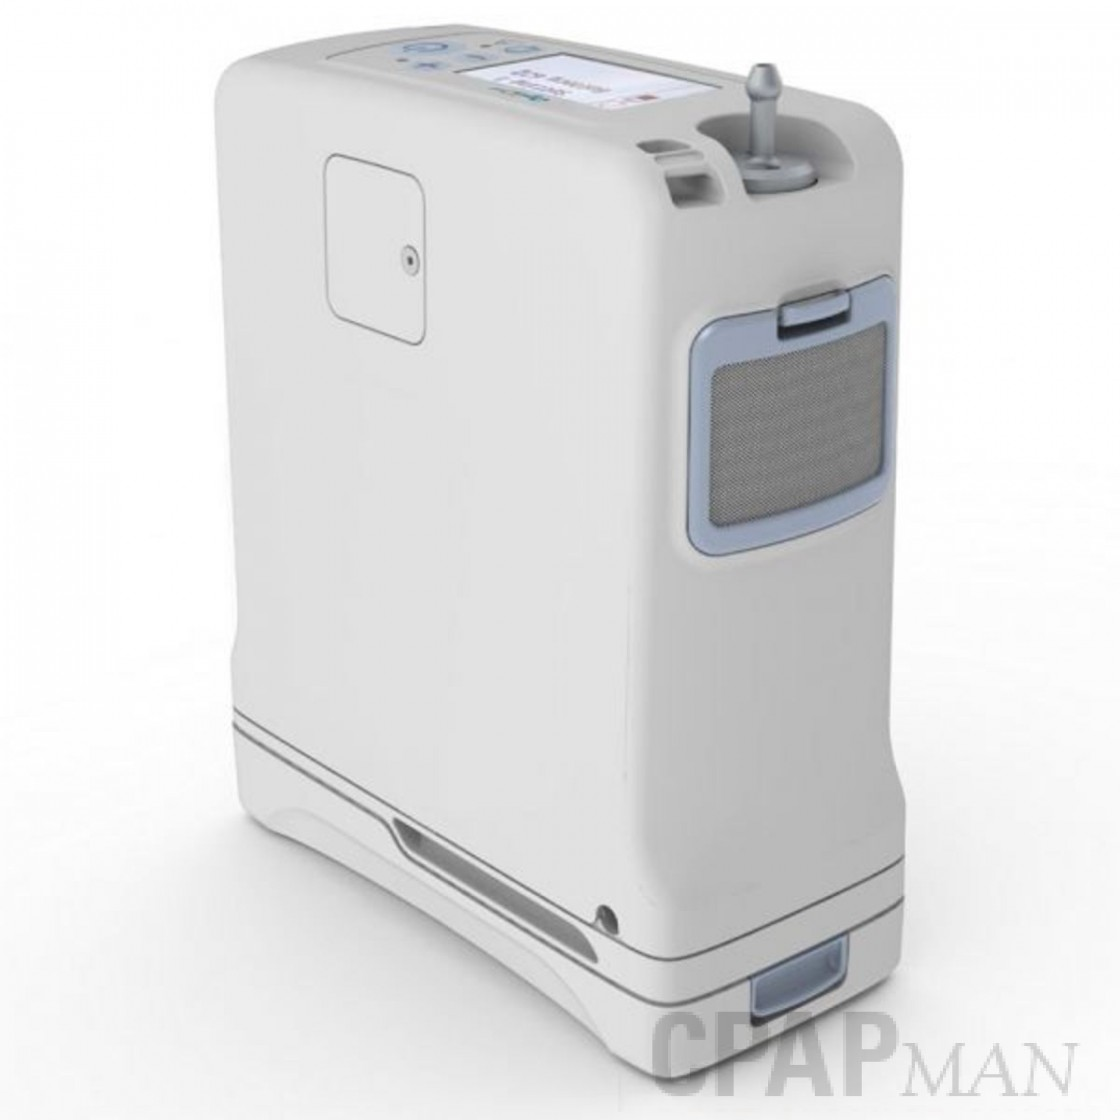 Inogen One G4 Portable Oxygen Concentrator - Pulse Dose